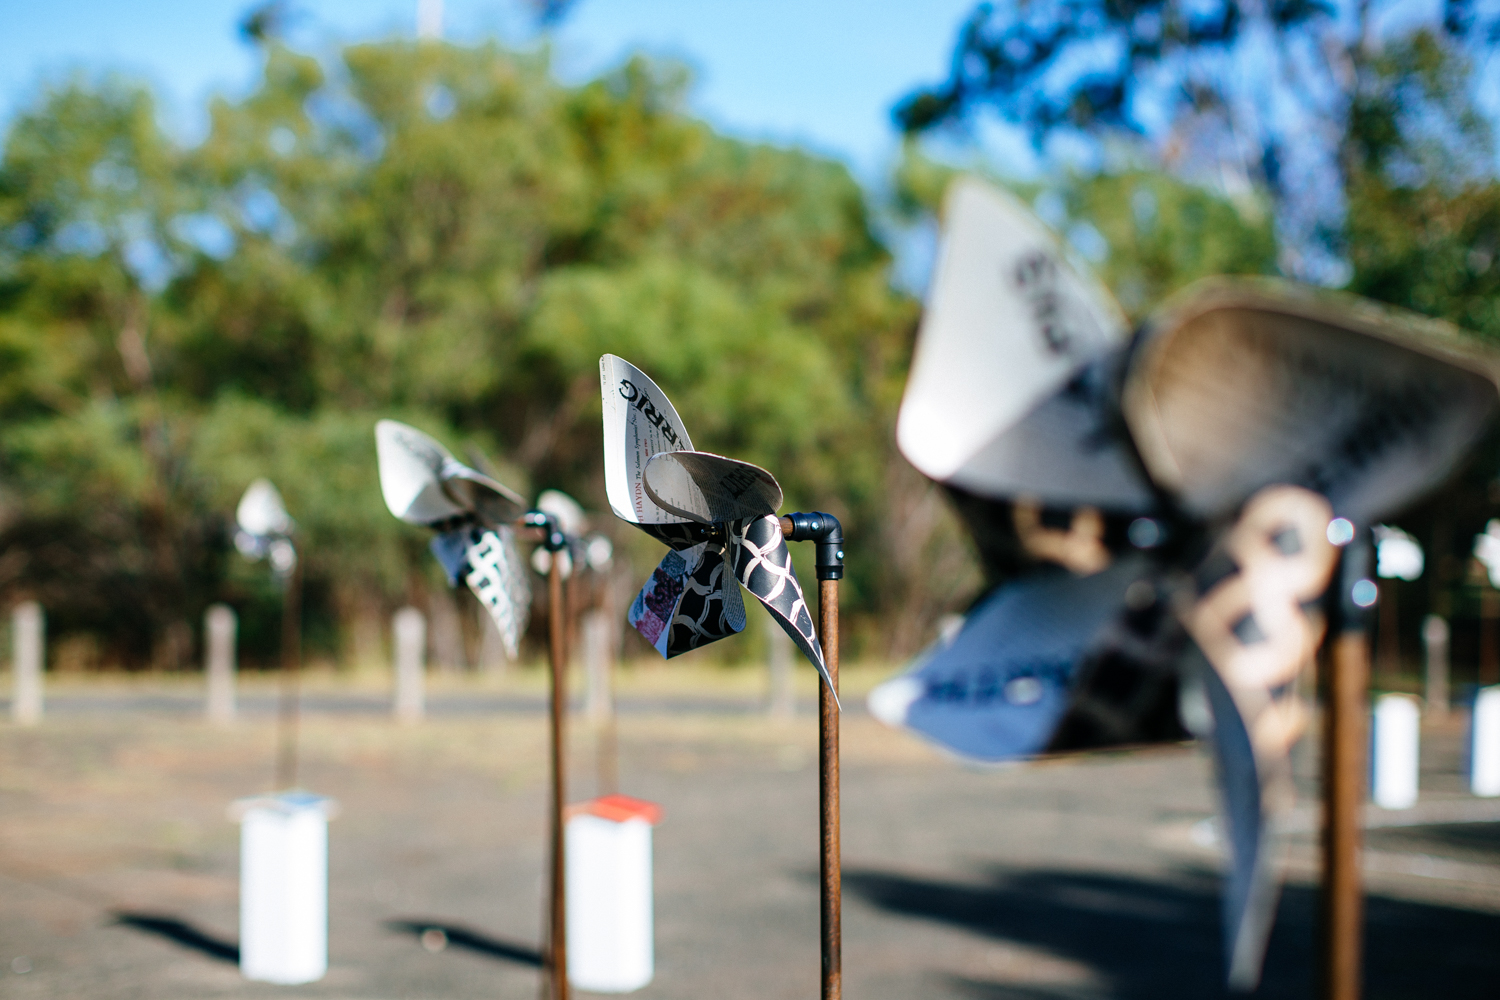 Handmade pinwheels animated by wind at Lara RSL, the second Songline Station.  Image by Ed Sloane Photography.